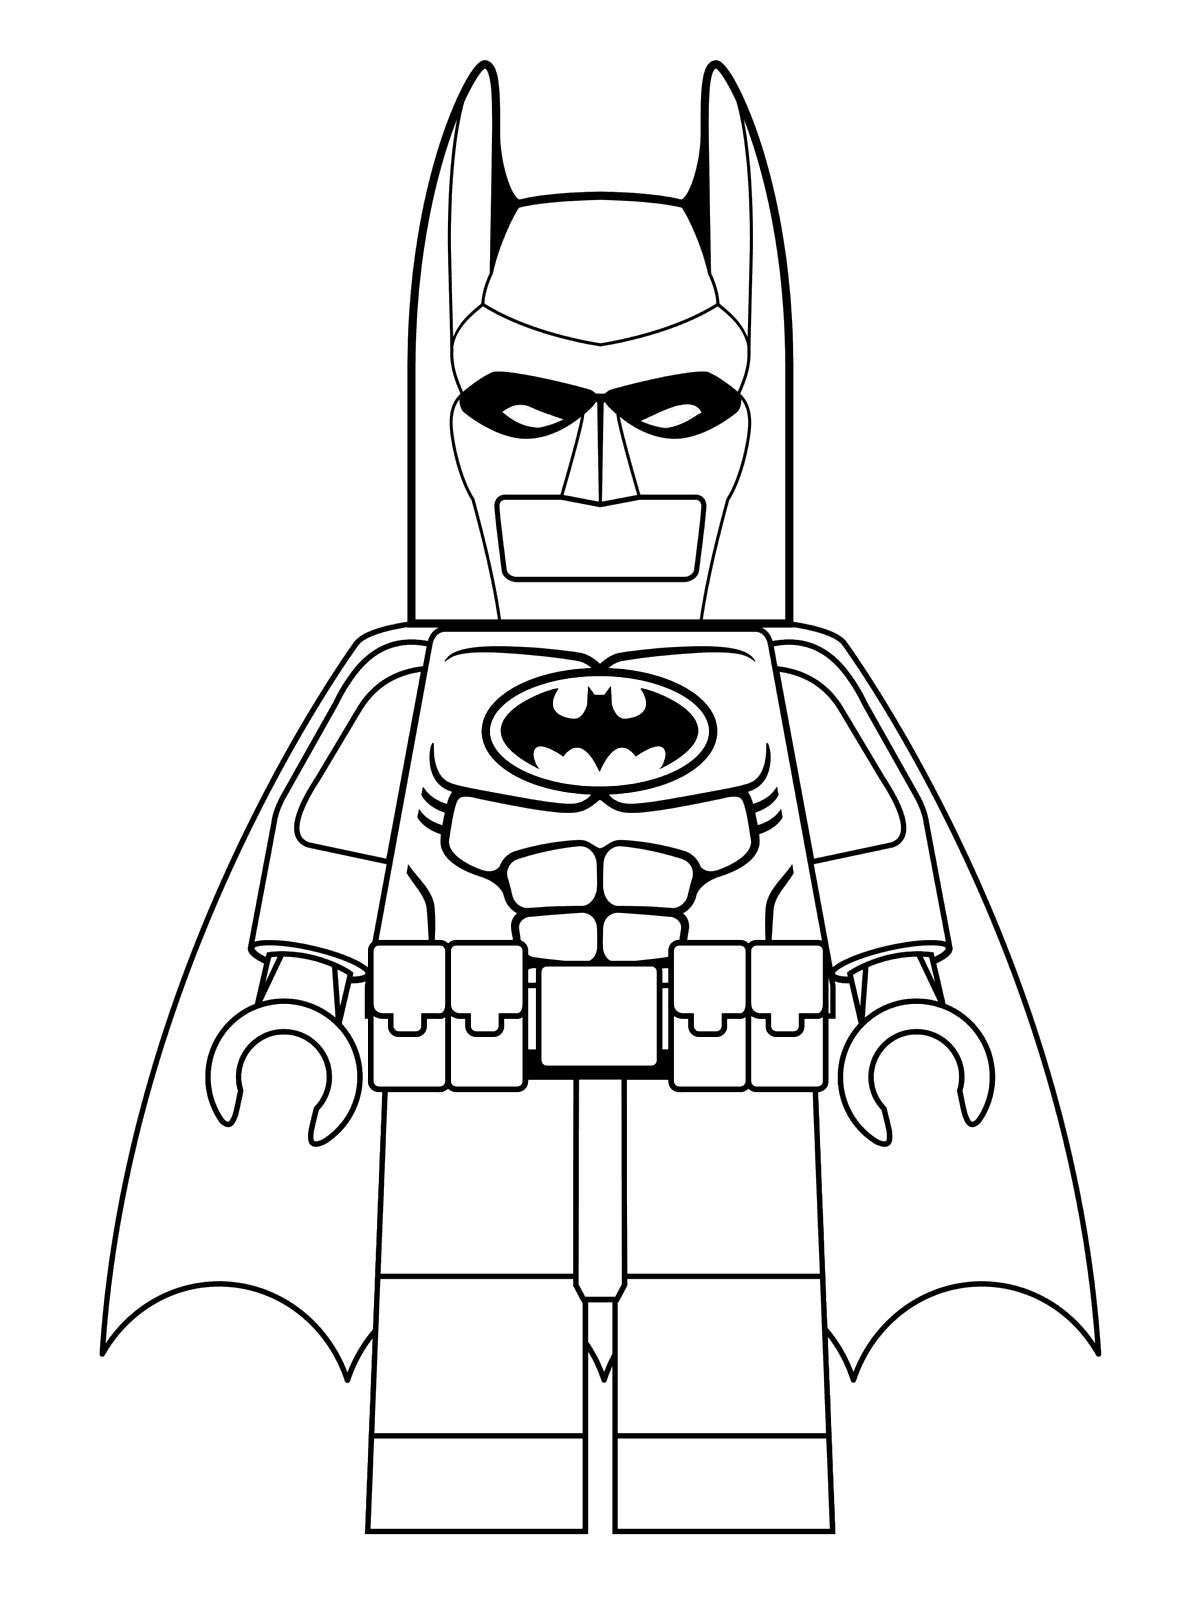 Lego Batmobile Coloring Pages